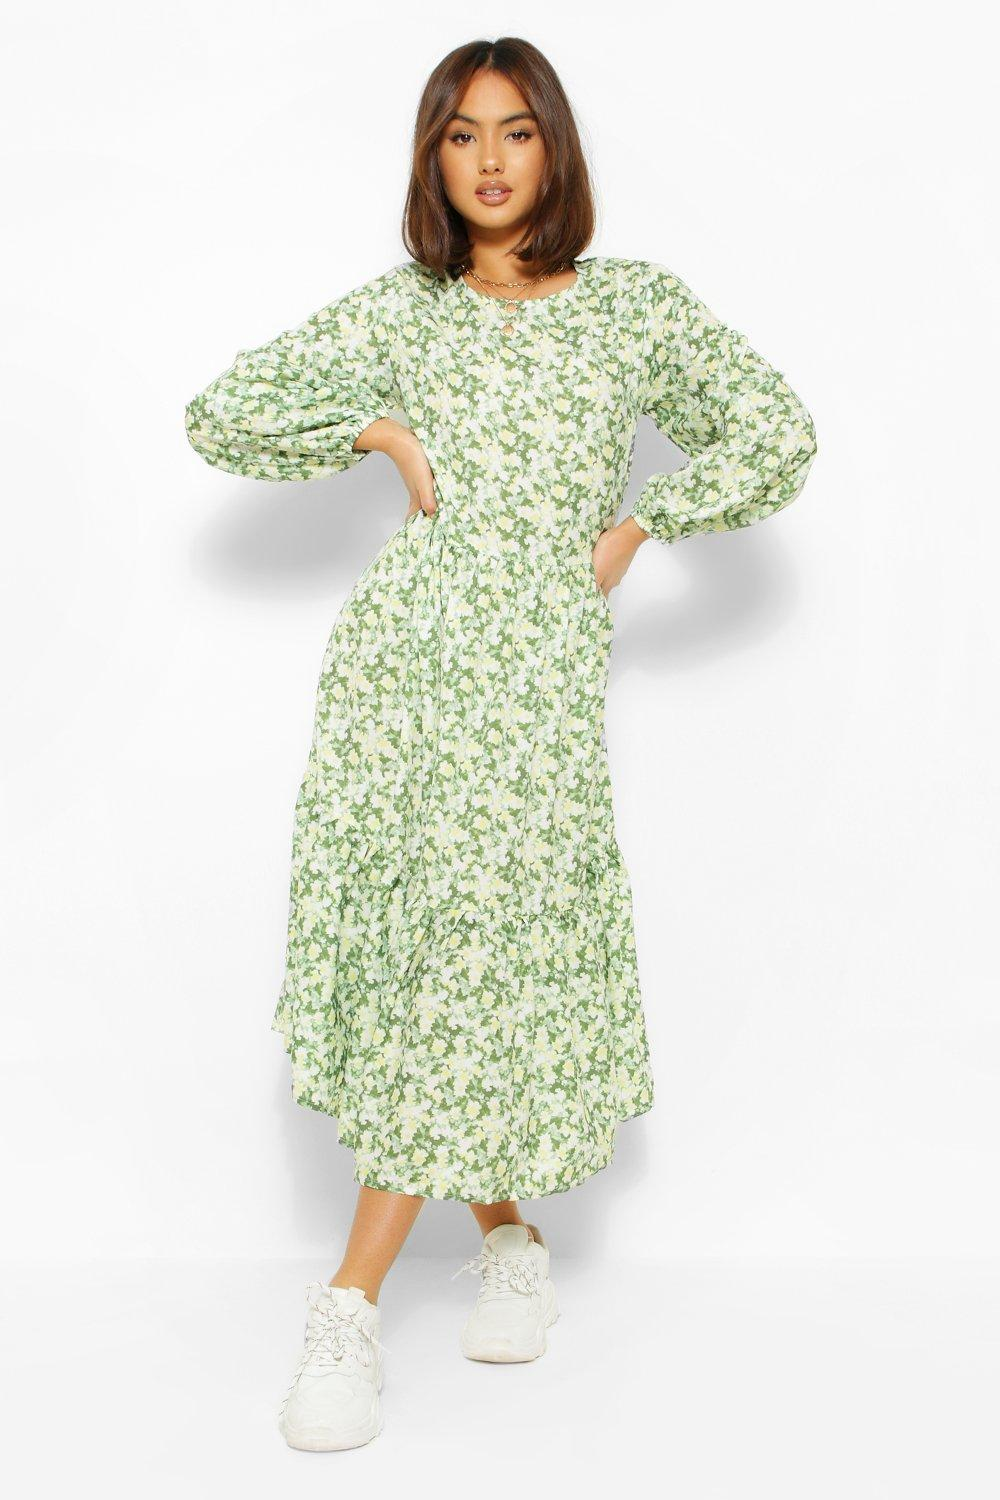 70s Dresses – Disco Dress, Hippie Dress, Wrap Dress Womens Oversized Balloon Sleeve Midaxi Dress - Green - 14 $31.50 AT vintagedancer.com